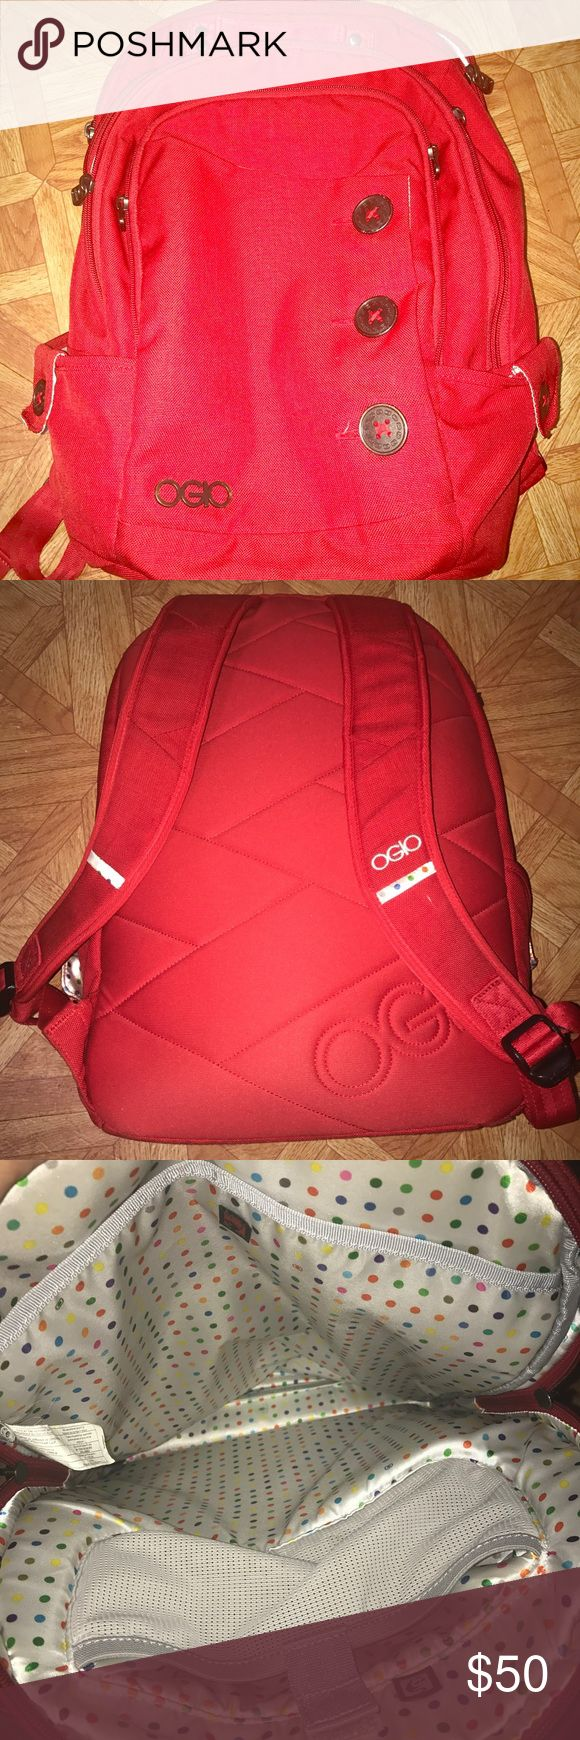 Red OGIO backpack! Has a lot of pockets and is great for school!!!! Accessories Bags